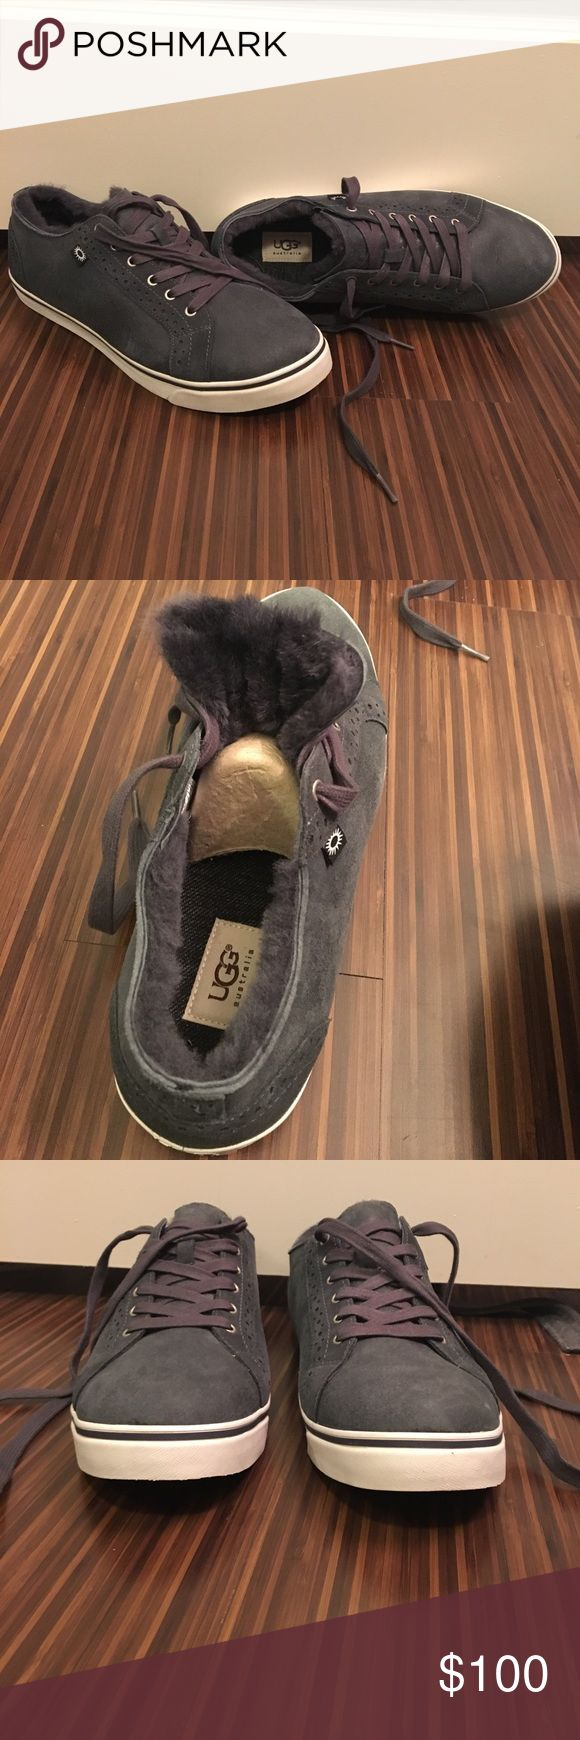 NEVER WORN MENS UGG SNEAKERS never worn, blue grey color (NOT purple), ugg fur lining UGG Shoes Sneakers